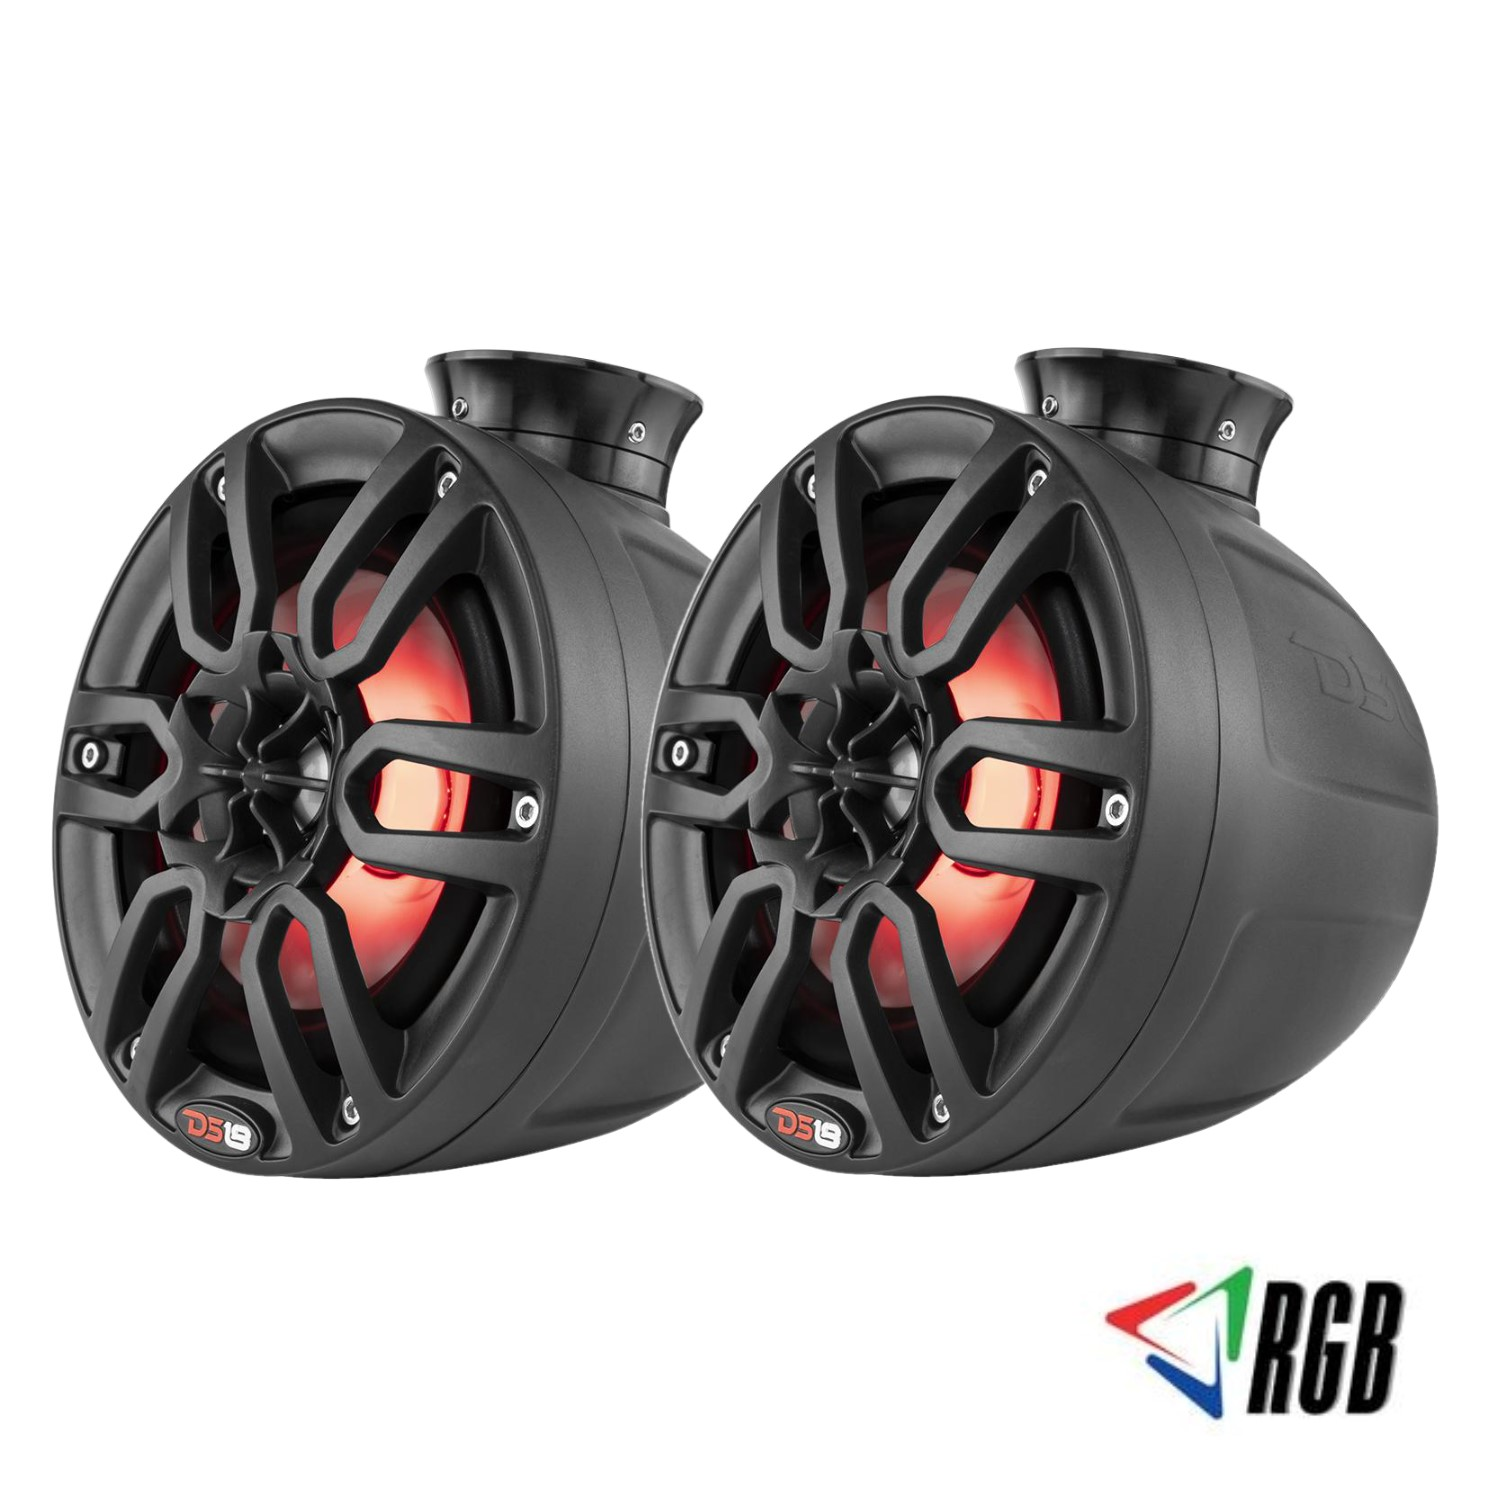 DS9 NXL-PS9BK 9W Max 9-ohm 9